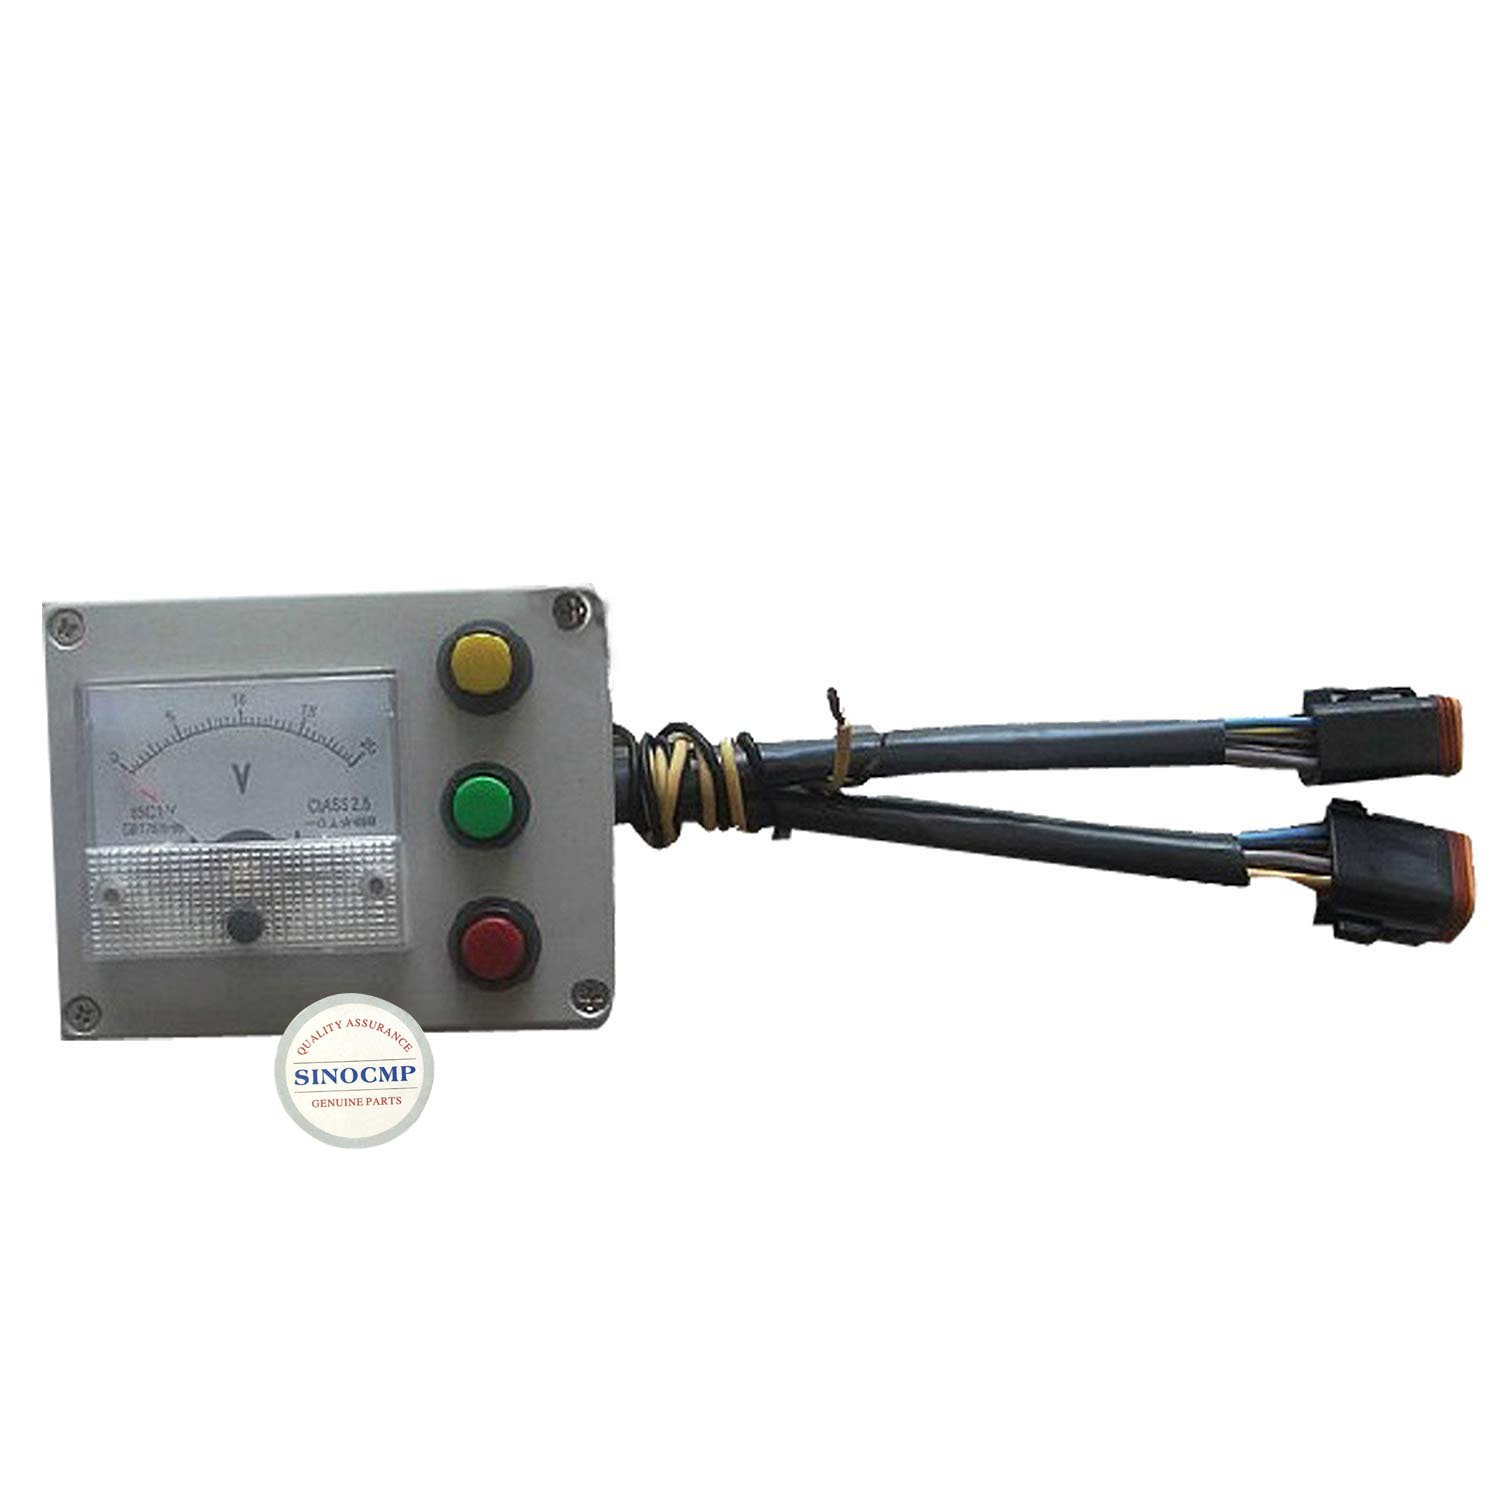 E320B Panel Tester - SINOCMP Panel Tester Excavator Access Voltage 24V Throttle Motor Test Tool for E320B E320C 320B 320C Excavator Parts, 3 Month Warranty by SINOCMP (Image #1)